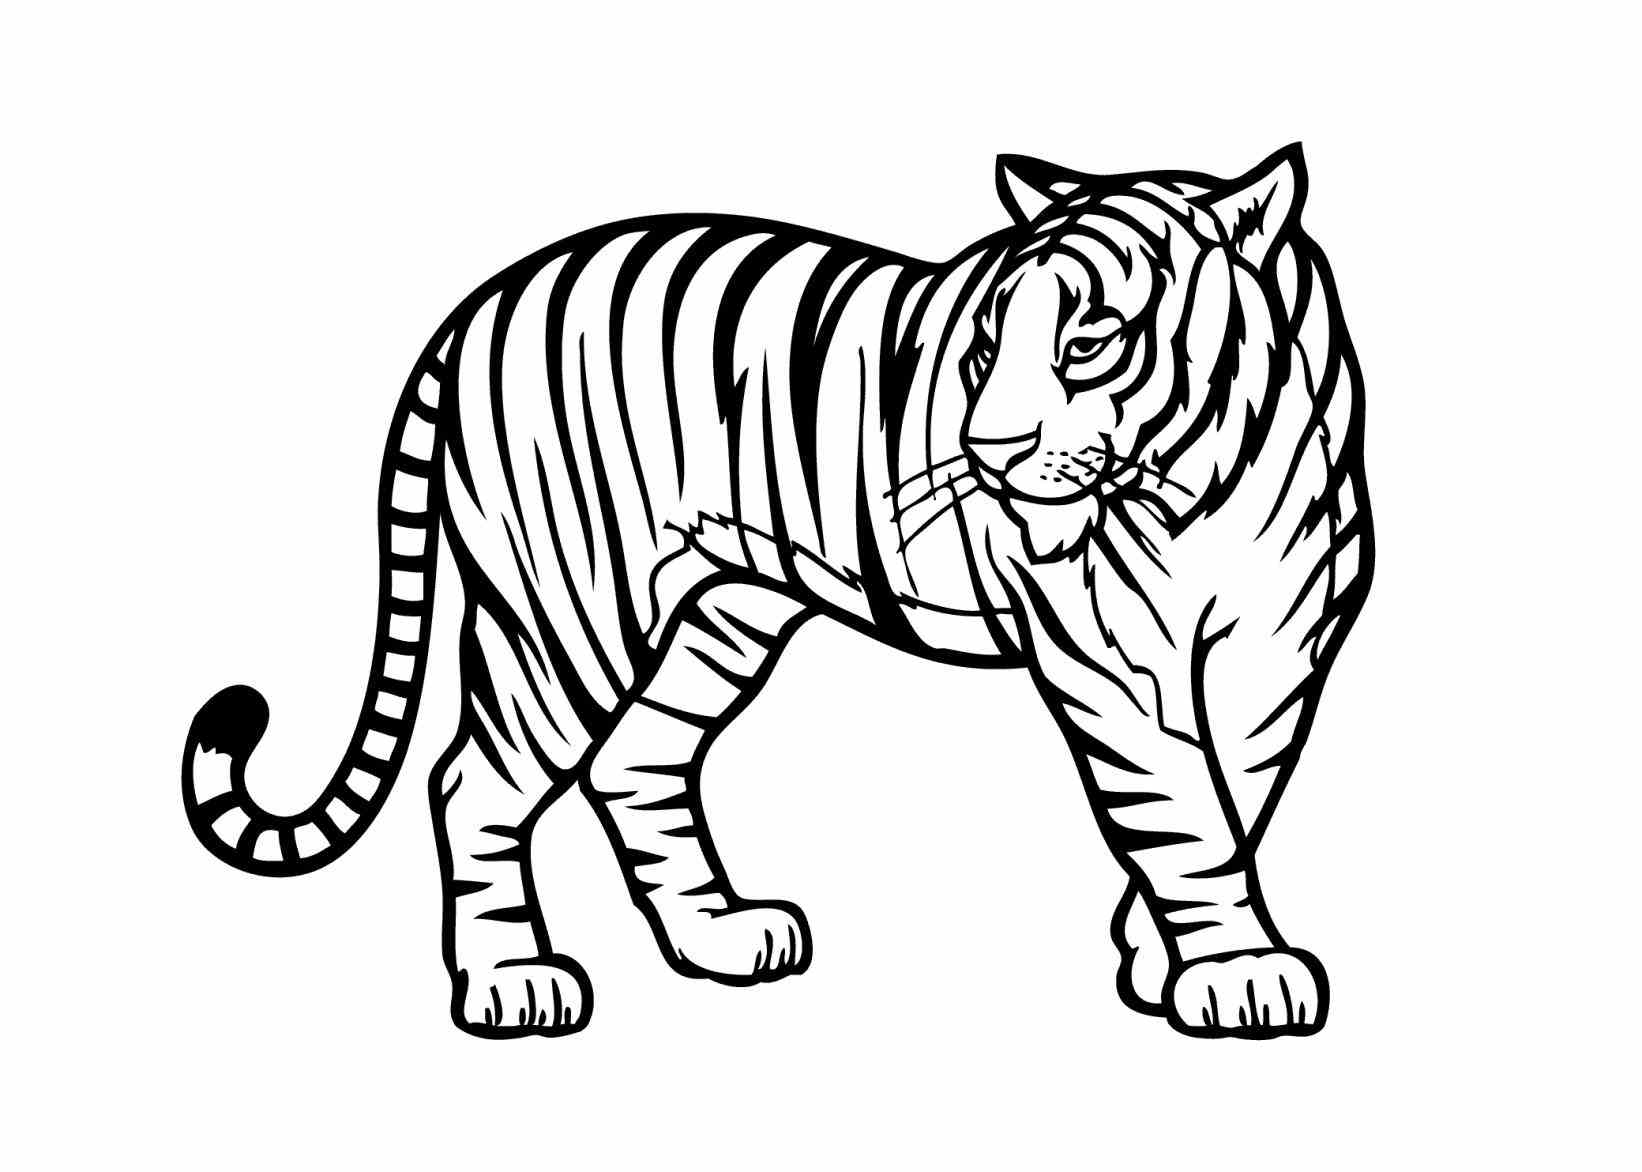 zoo animals coloring pictures draw samples free coloring pages zoo animals easy drawing animals pictures zoo coloring